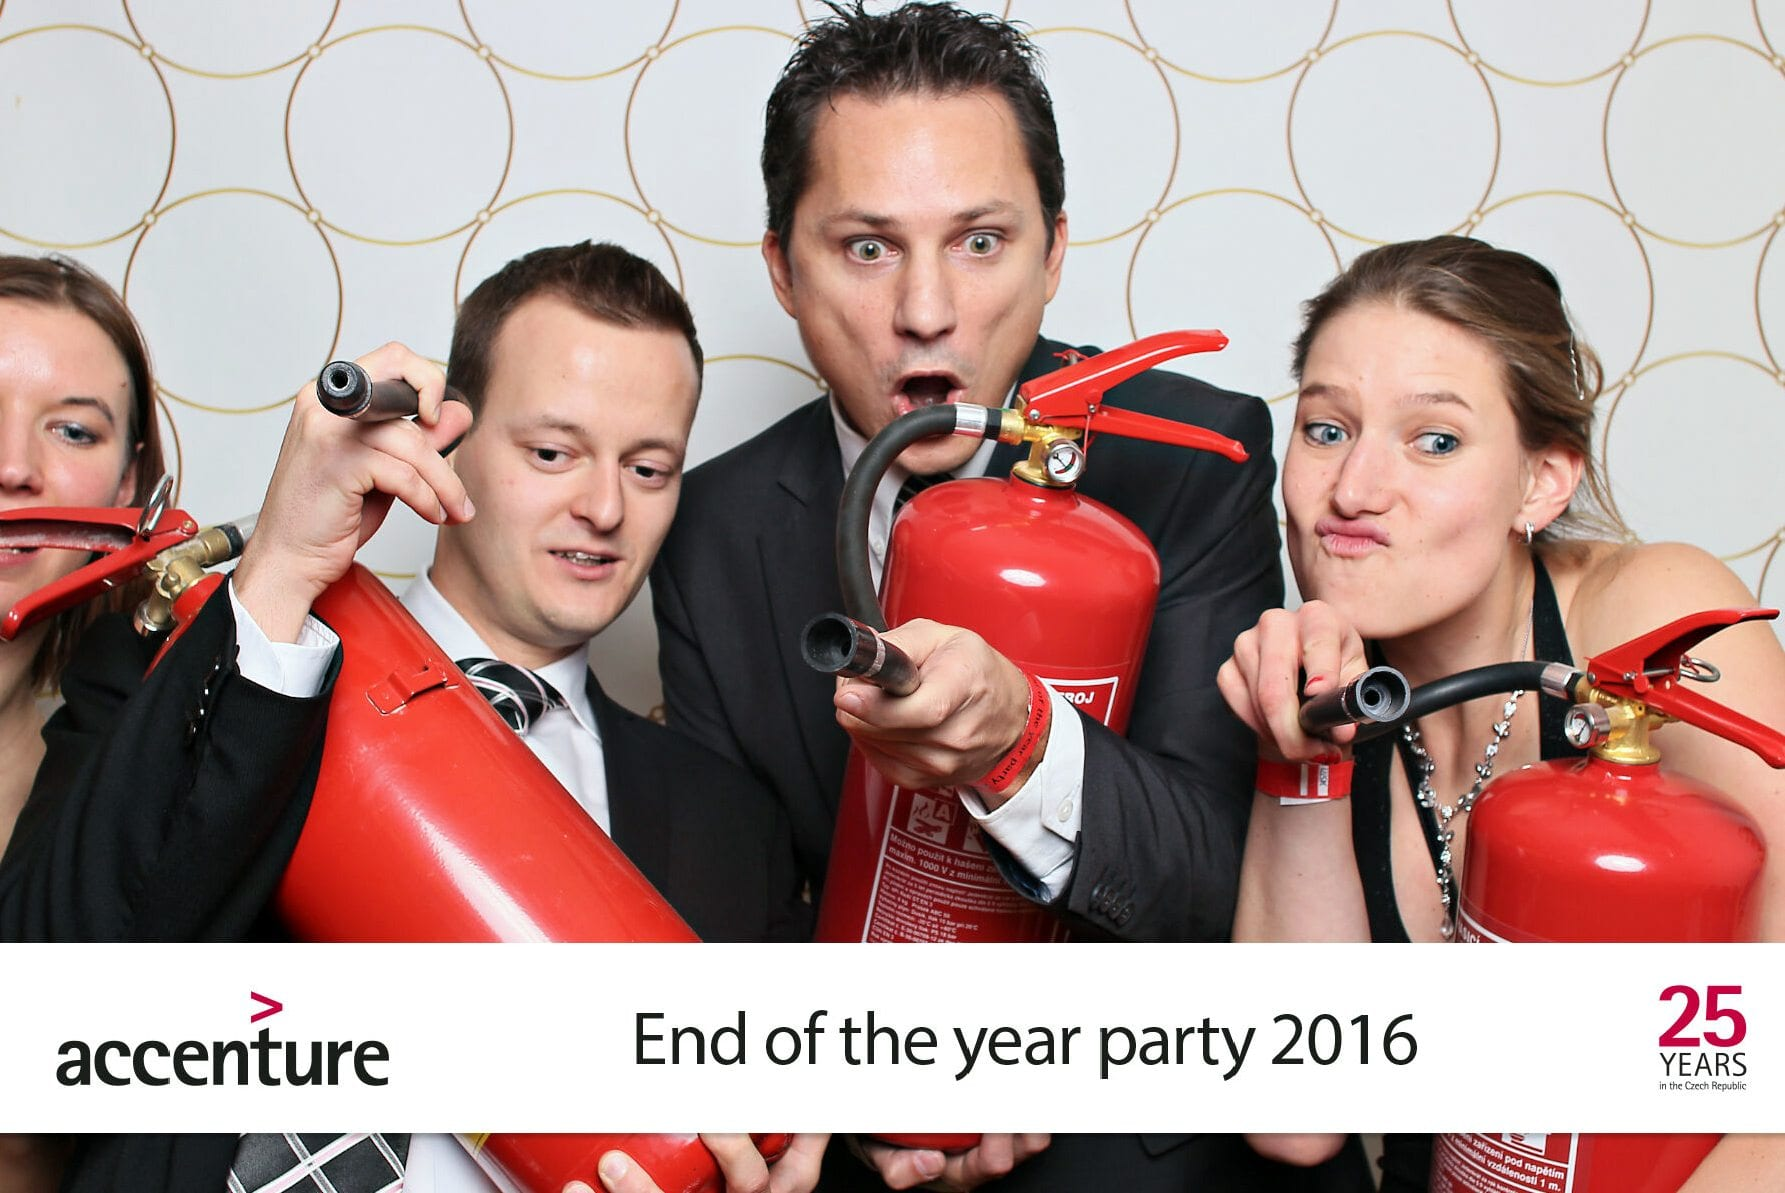 fotokoutek-accenture-end-of-the-year-party-1-171200